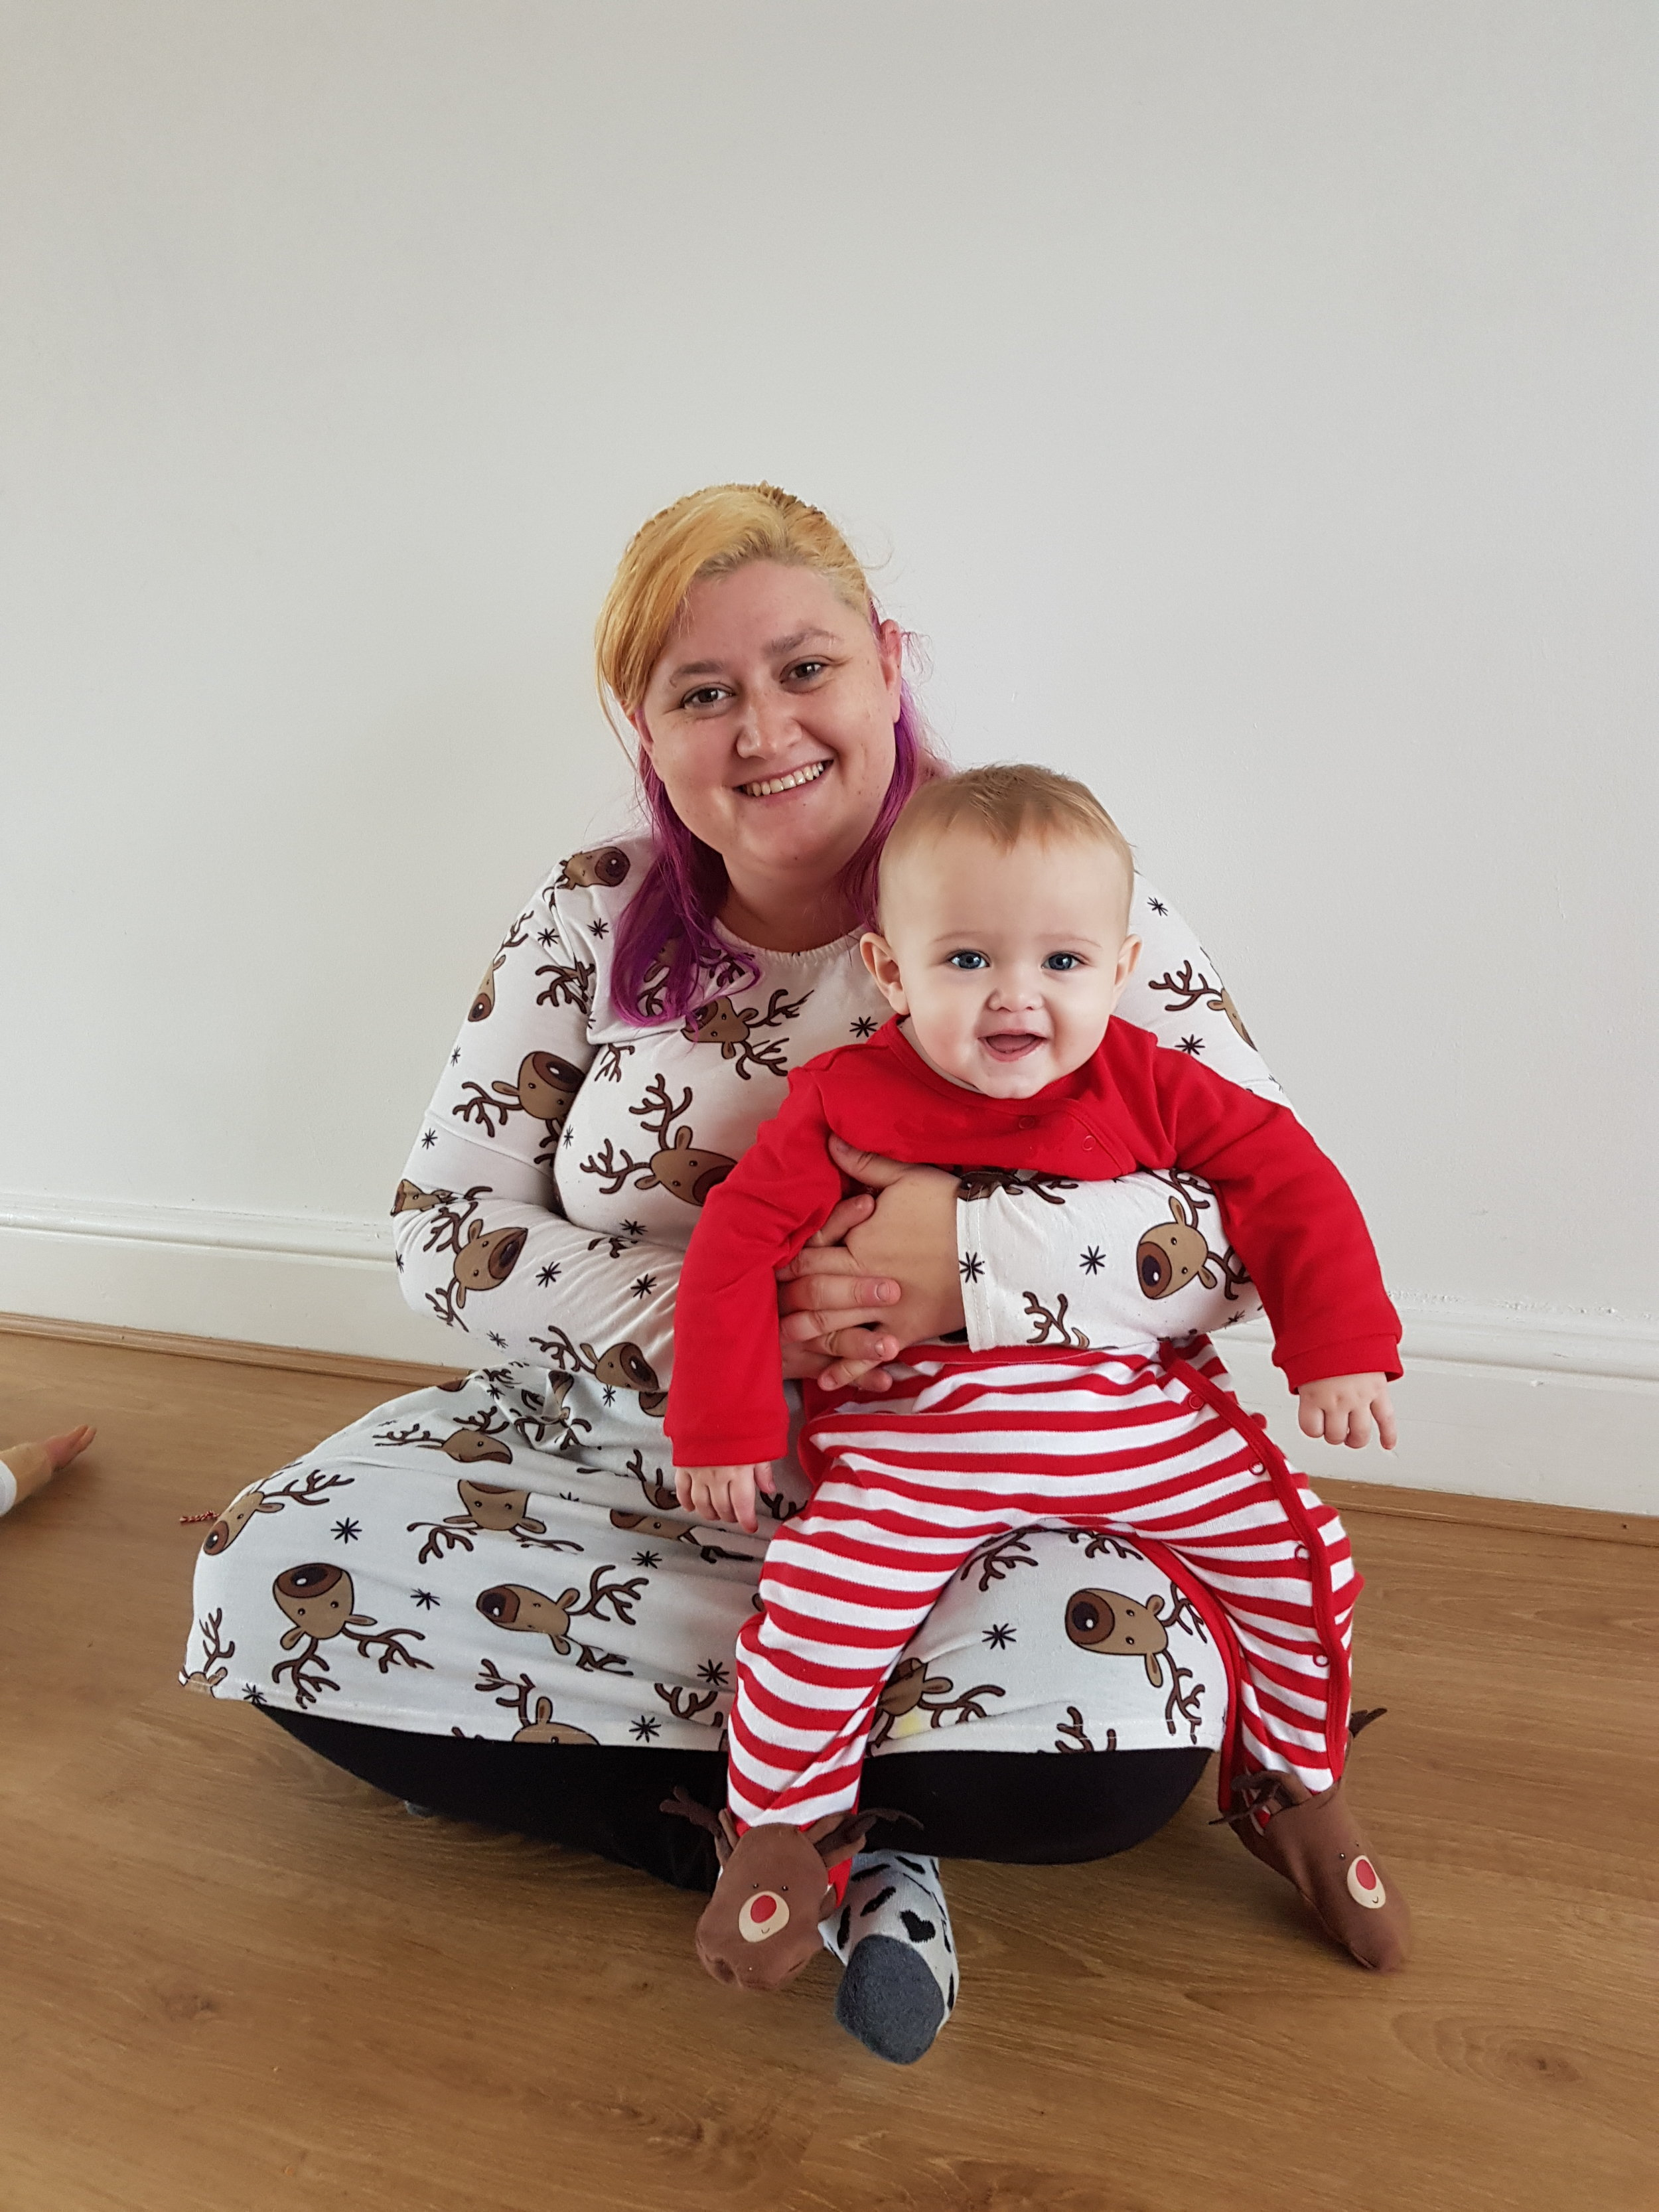 Laura & James - Camberley - 🌼Name: Laura 🌼 Location: Blackwater🌼Which Classes have you done?: We have been to a couple of classes, baby massage, sensory baby yoga and we are looking forward to our next session in January. 🌼 What do you love about Mummas Classes?: The classes were recommended to me so James and I came to baby massage it was amazing the other mum's and babies were lovely and fun. Our teacher Anna was/Is lovely she made us feel welcome and part of the group, she gave us clear vocal instructions and brilliant visual aids. I love the fact that I have made a couple of mummy friends and James has made a couple of friends which is amazing :D 🌼How have you/your baby benefitted from classes?: I feel that James and I have benefited from mummas because it has enhanced our relationship and bond. James loves learning and experiencing new things and I get to see what he is capable of🌼Why would you recommend Mummas Classes?: I would highly recommend mummas to any one and everyone it's amazing and just a great experience for mummy and baby. Thank you ladies!!